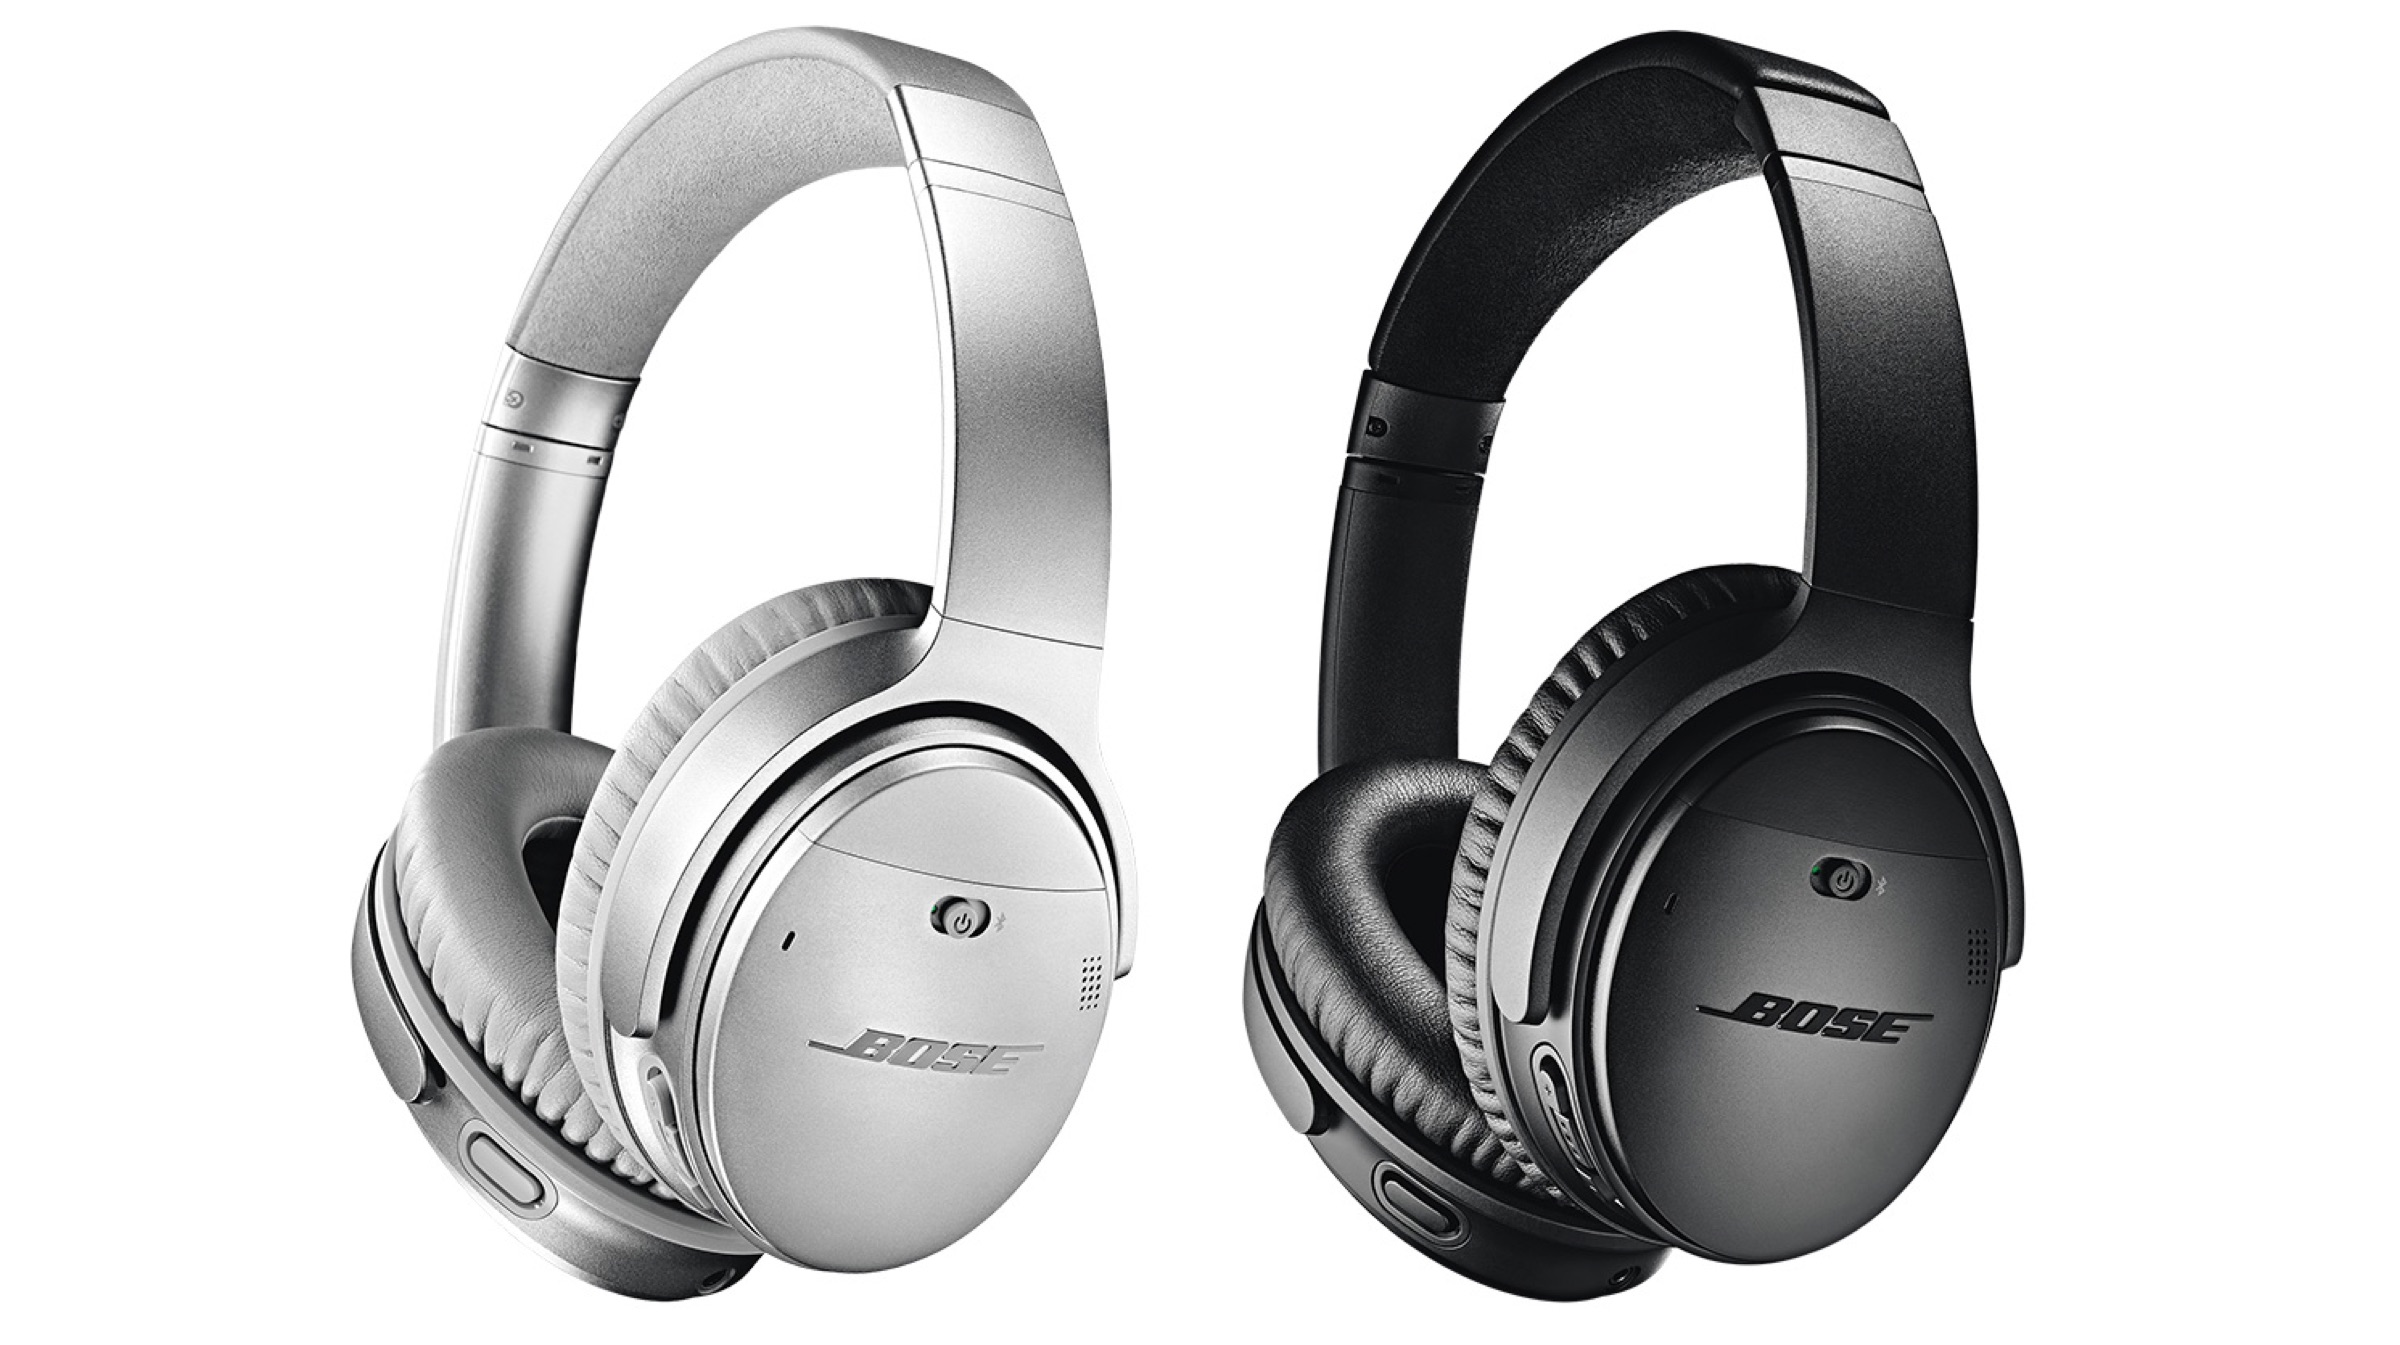 bose 35 ii. bose qc 35 ii launched in india, specs, price where to buy - igyaan ii